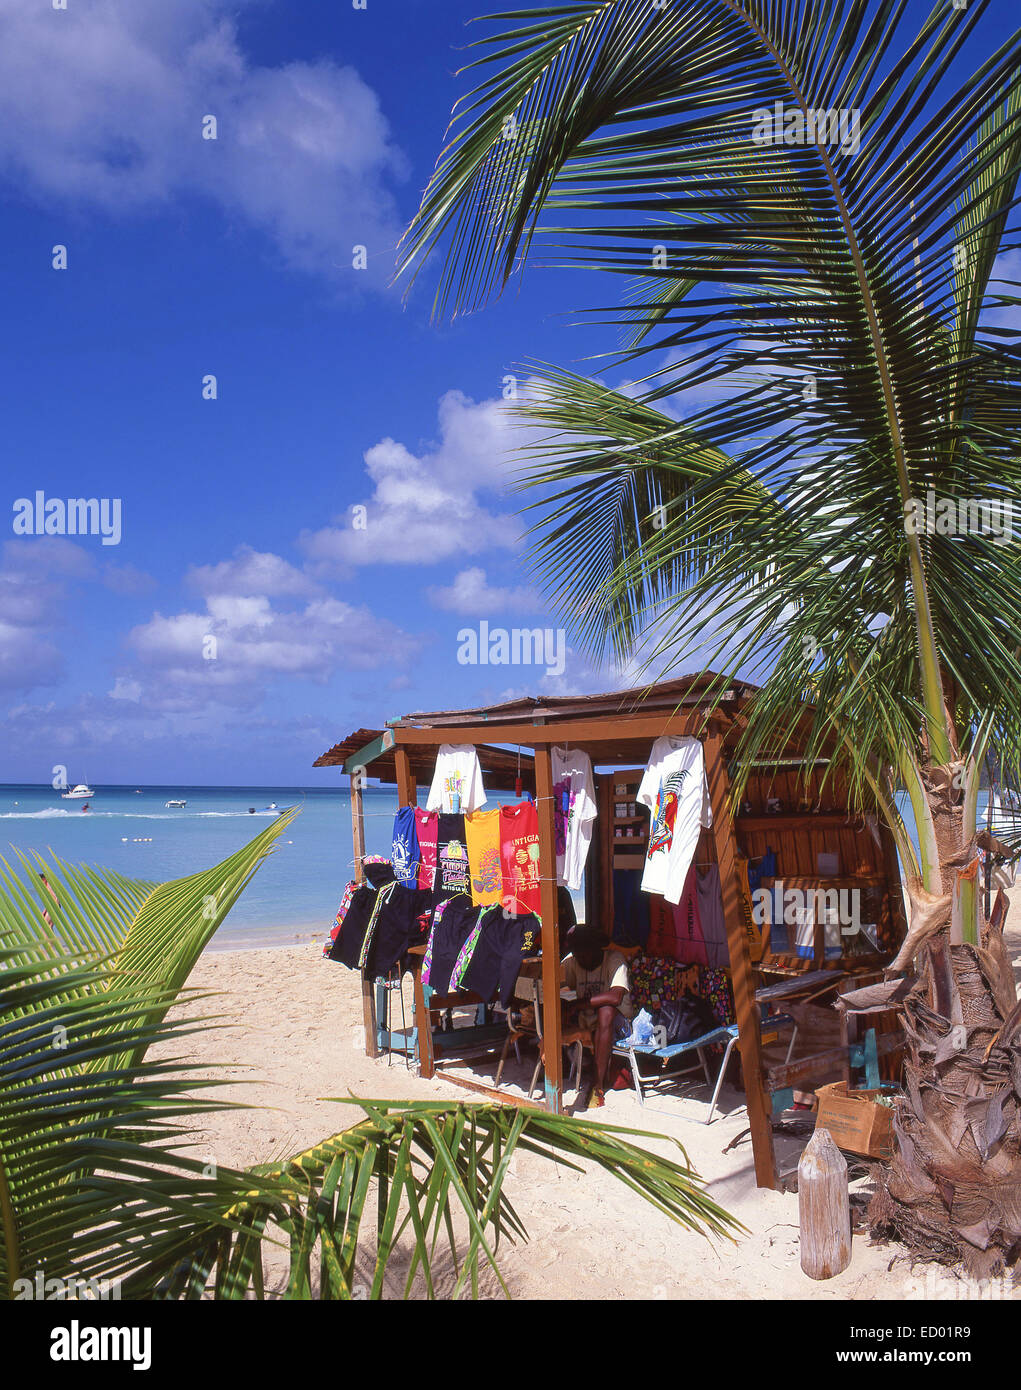 Ropa de playa cala, Jolly Beach Resort, en la Parroquia de Santa María, Antigua, Antigua y Barbuda, Antillas, Imagen De Stock